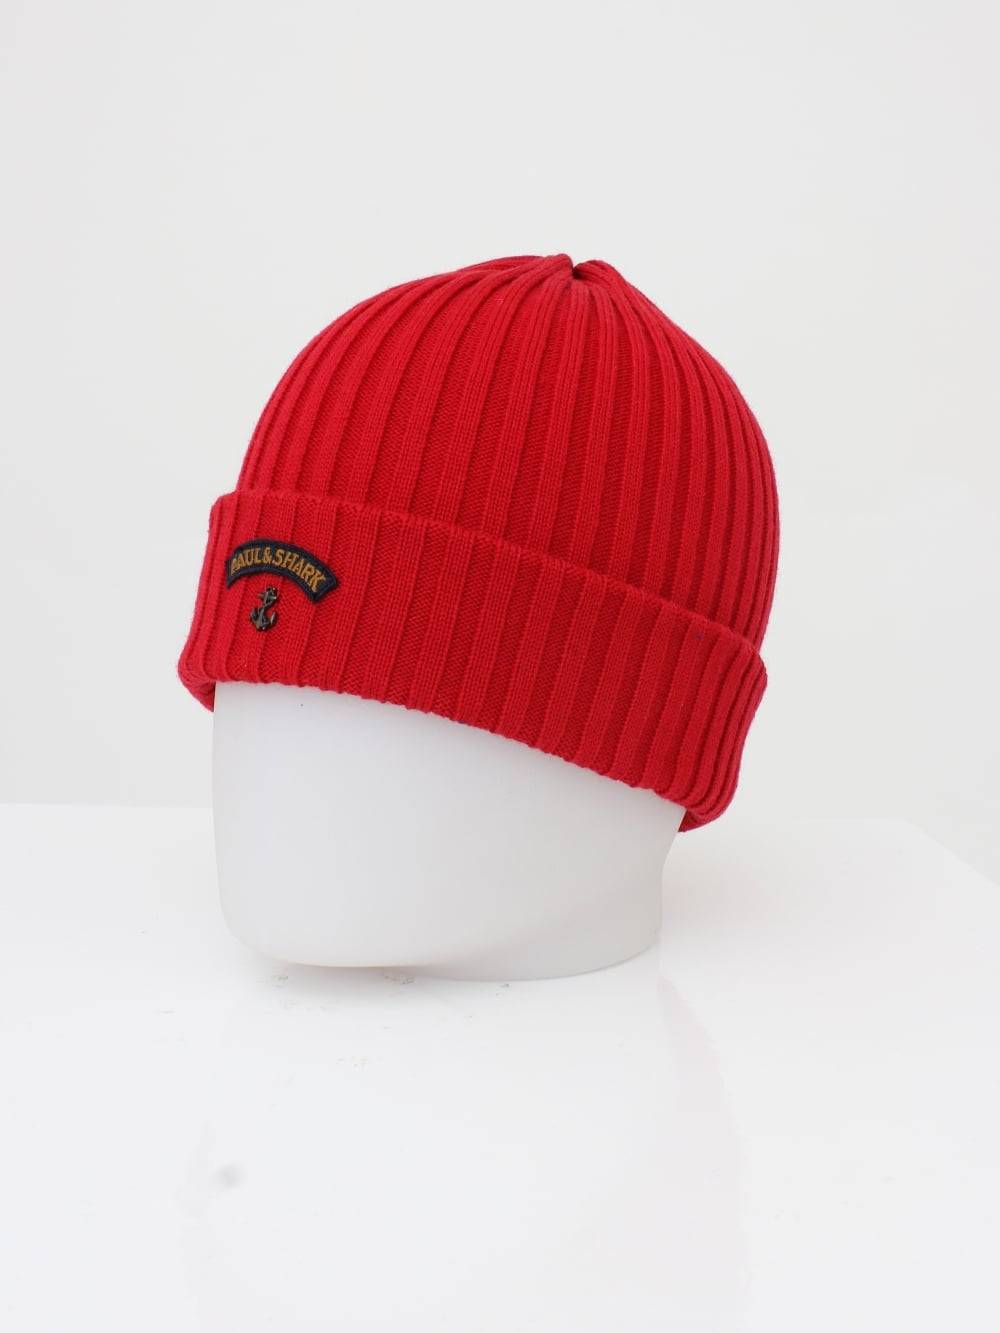 Paul   Shark Knitted Logo Beanie in Red - Northern Threads 315795d90a1